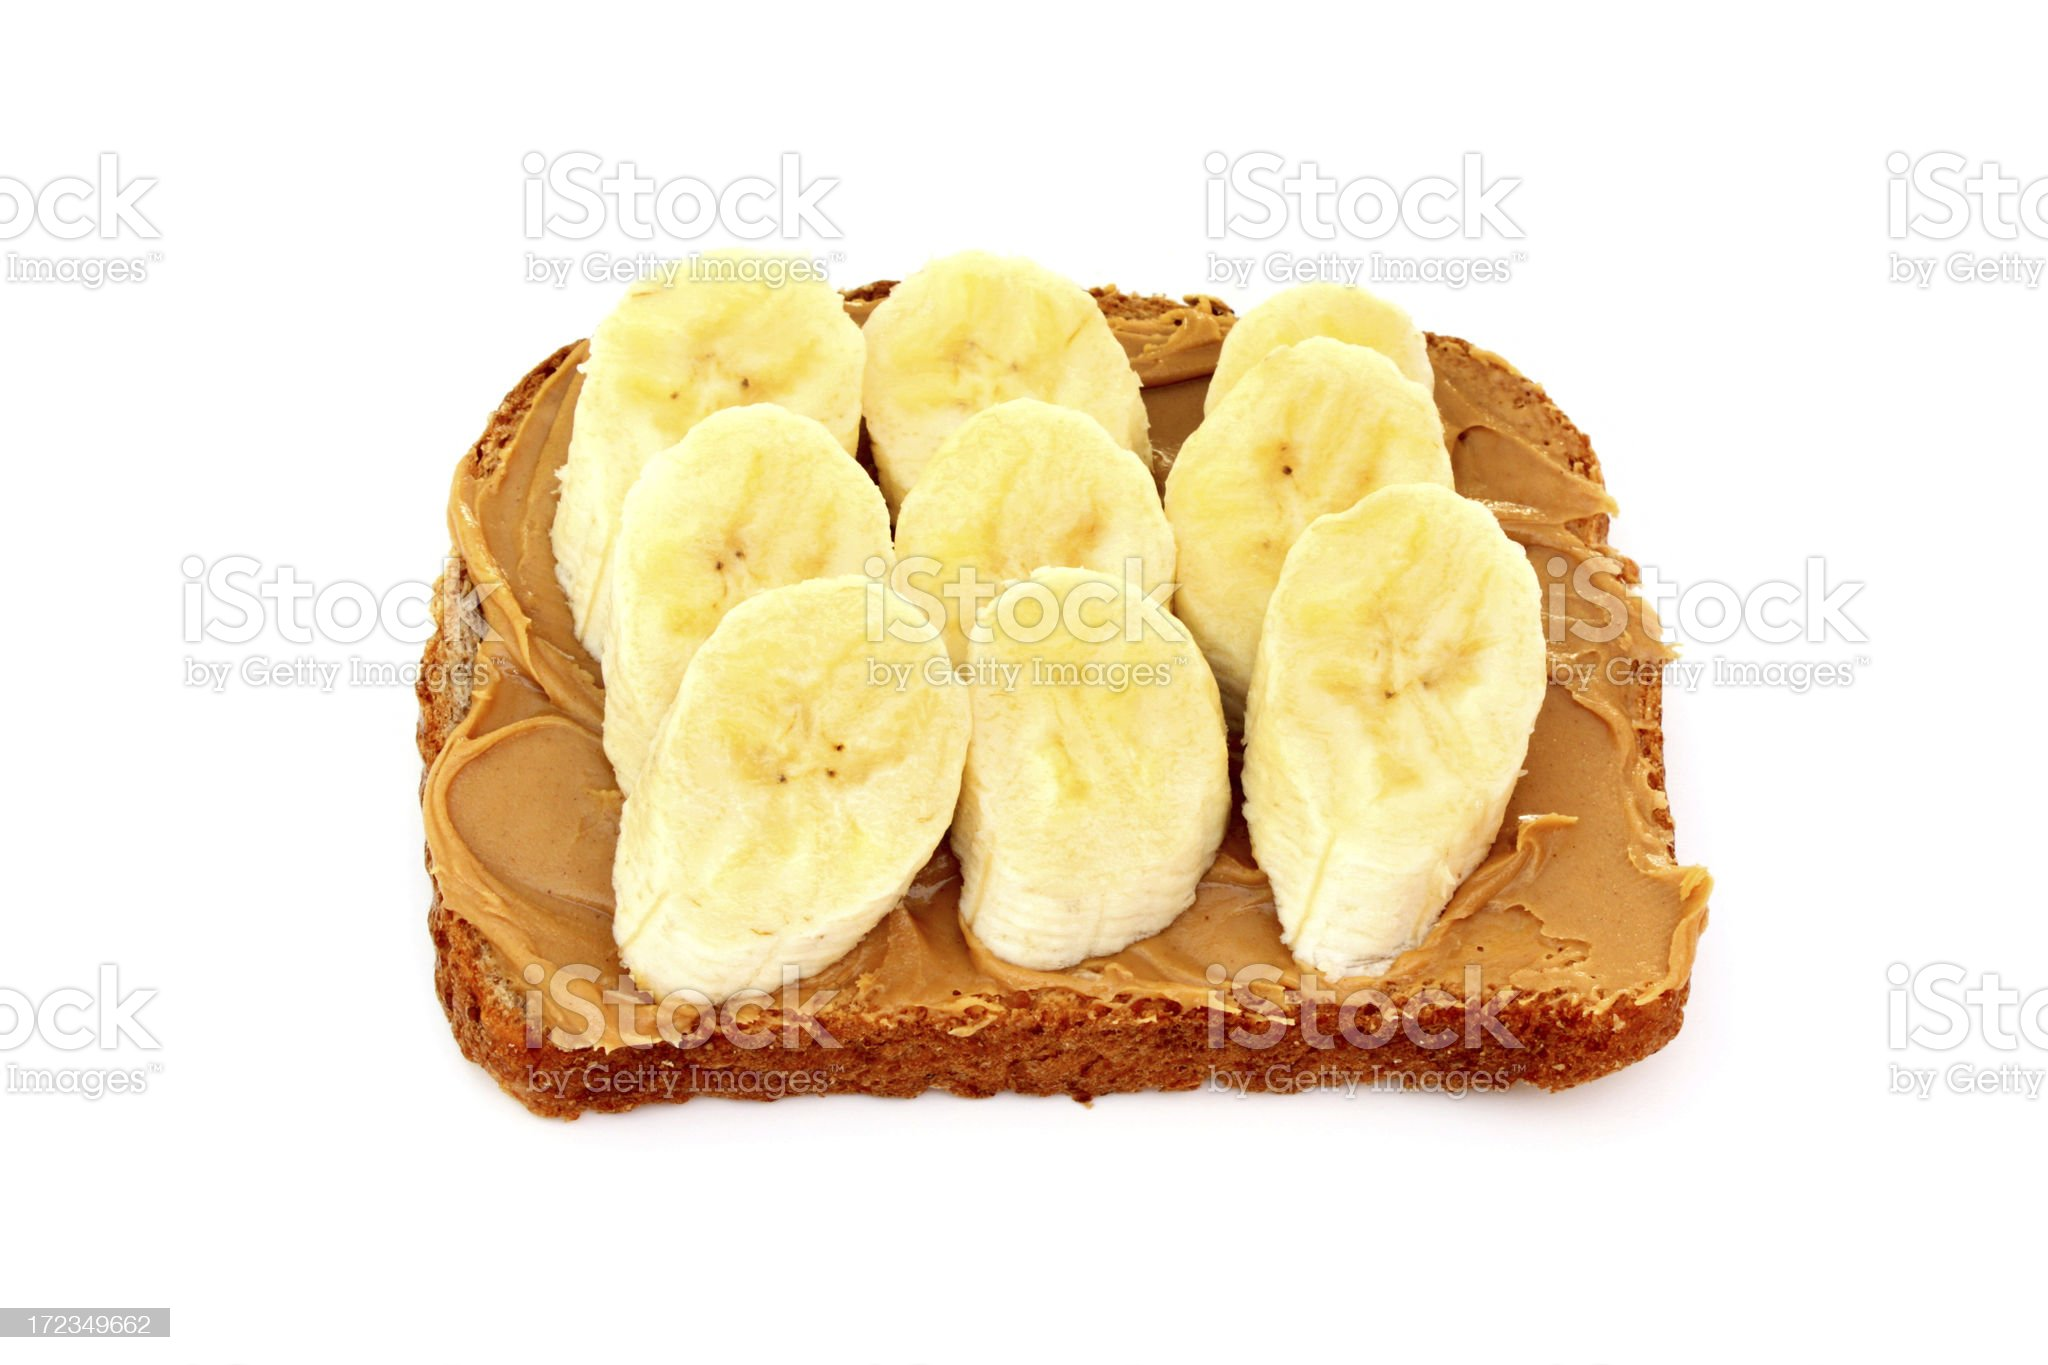 Peanut Butter and Banana Sandwich royalty-free stock photo